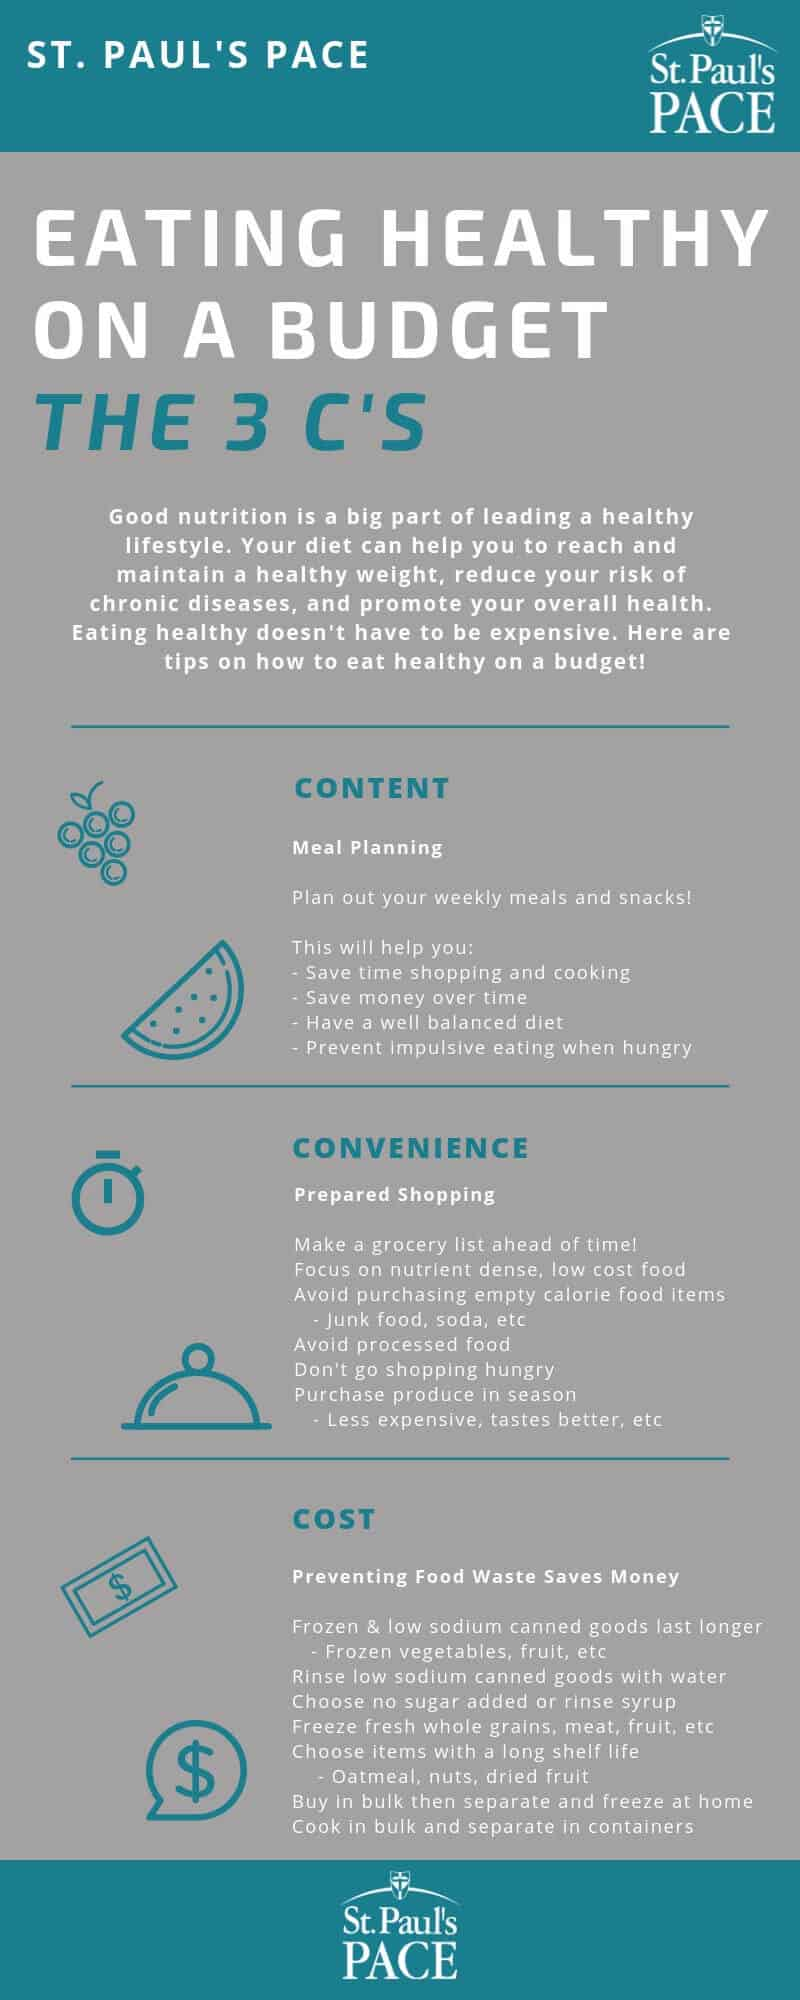 Eating Healthy on a Budget: The 3 C's